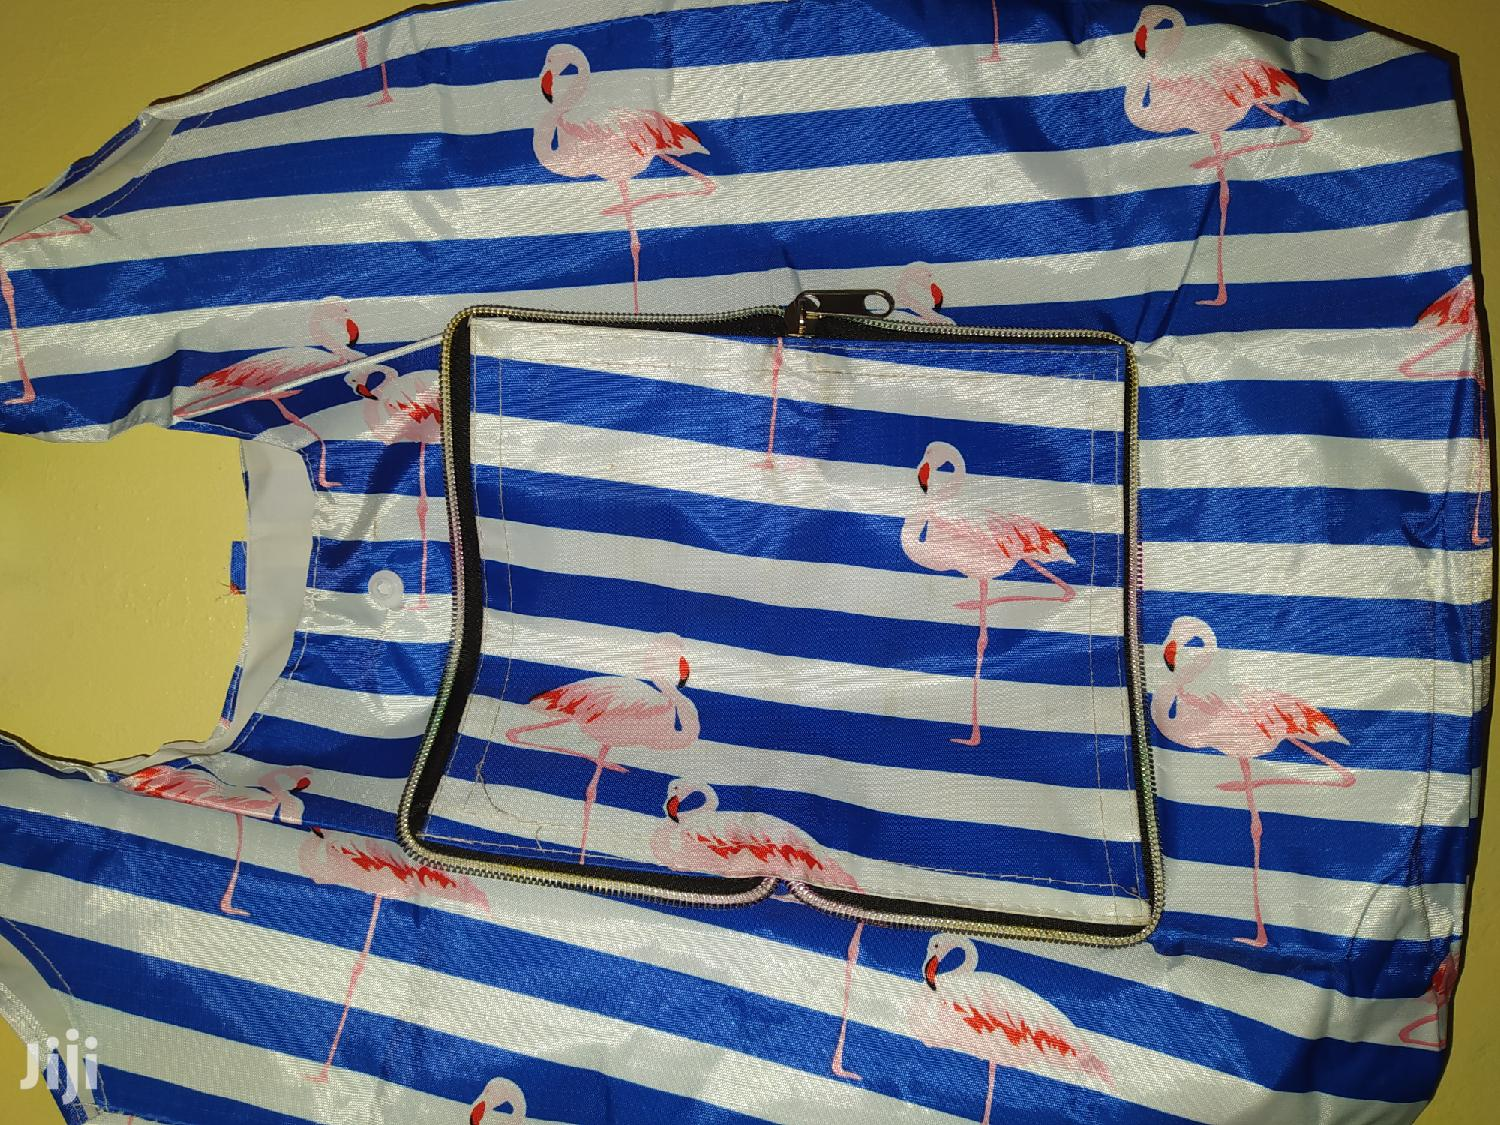 Archive: Classy Shopping Bags (They Are Re_ Usable)